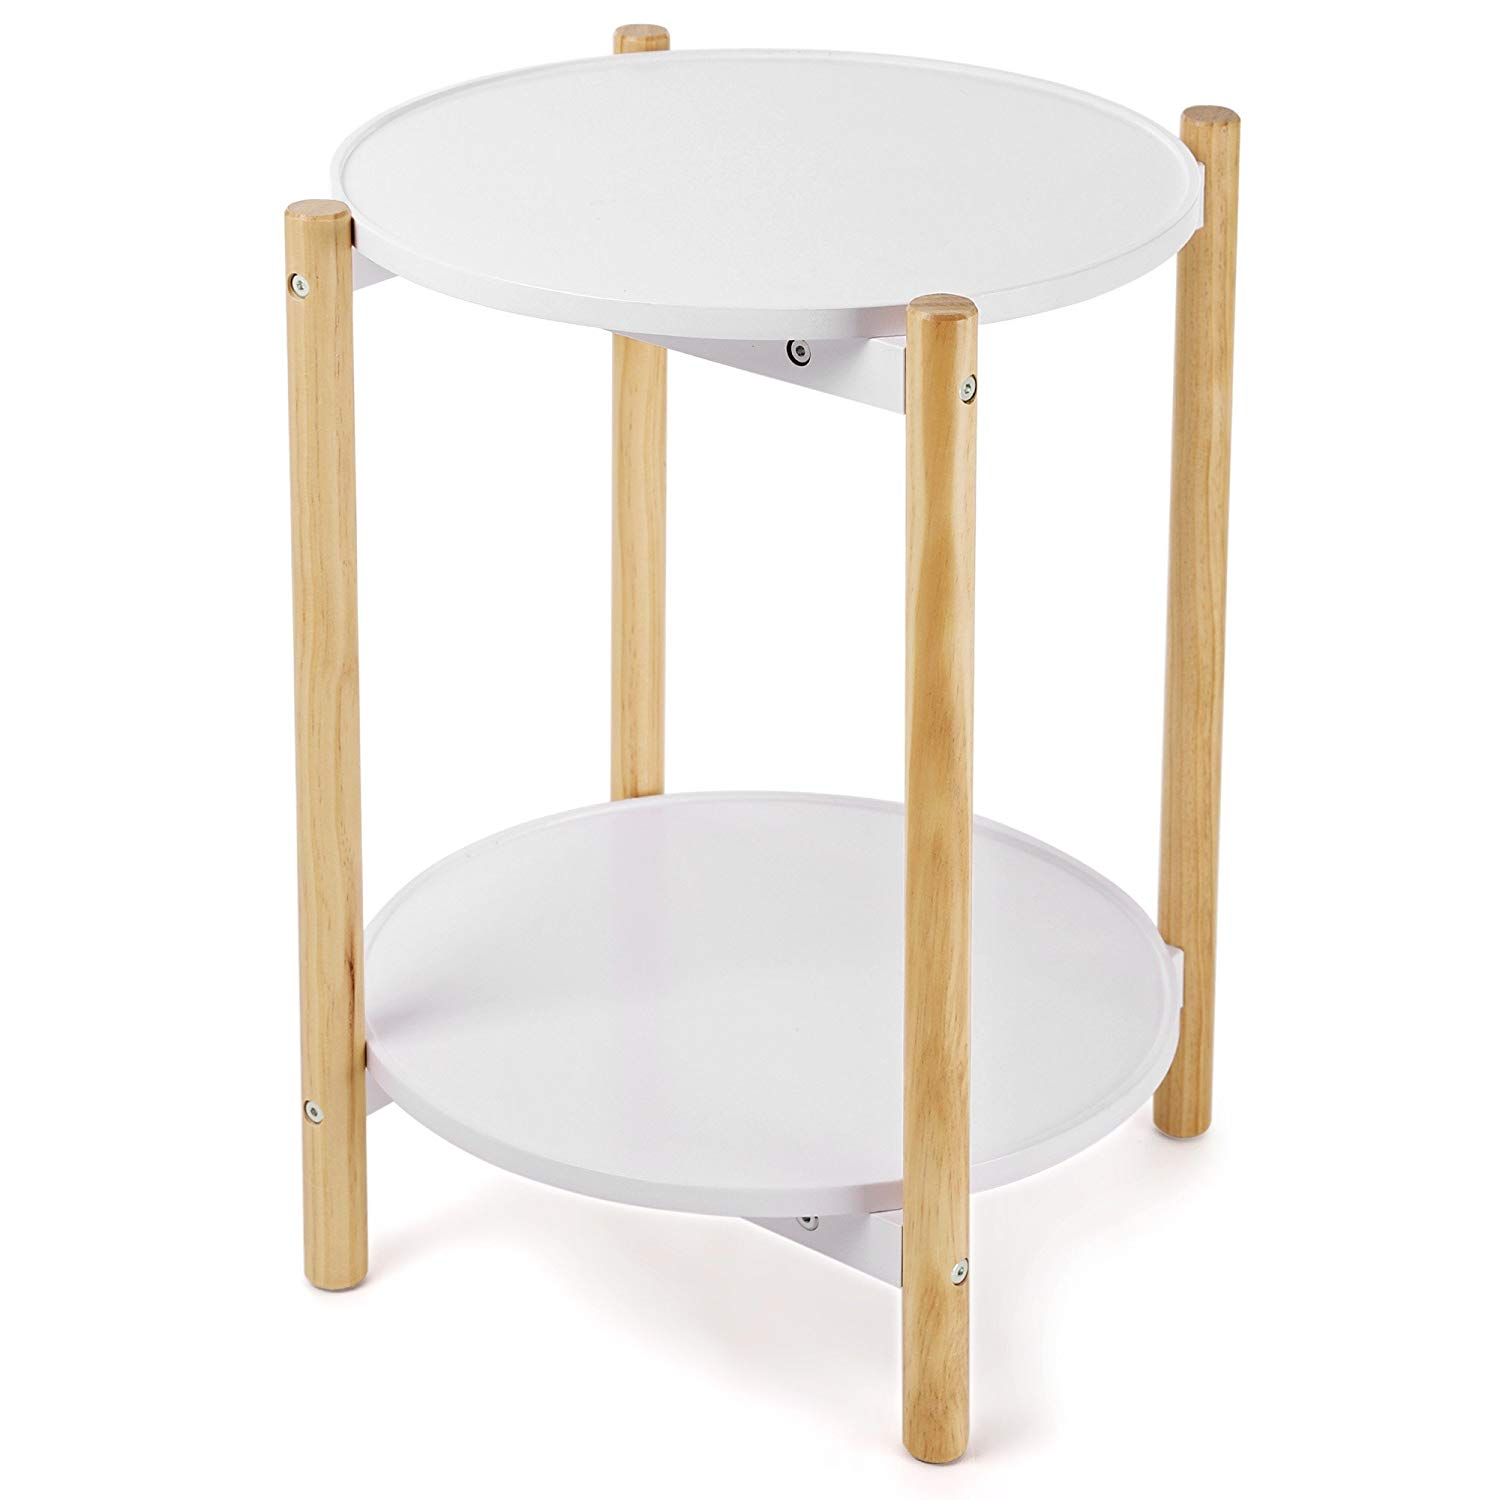 white lamp centerpieces accent tables lamps kijiji ott round nursery small target redmond table decor and living furniture top room threshold lighting ideas gold outdoor